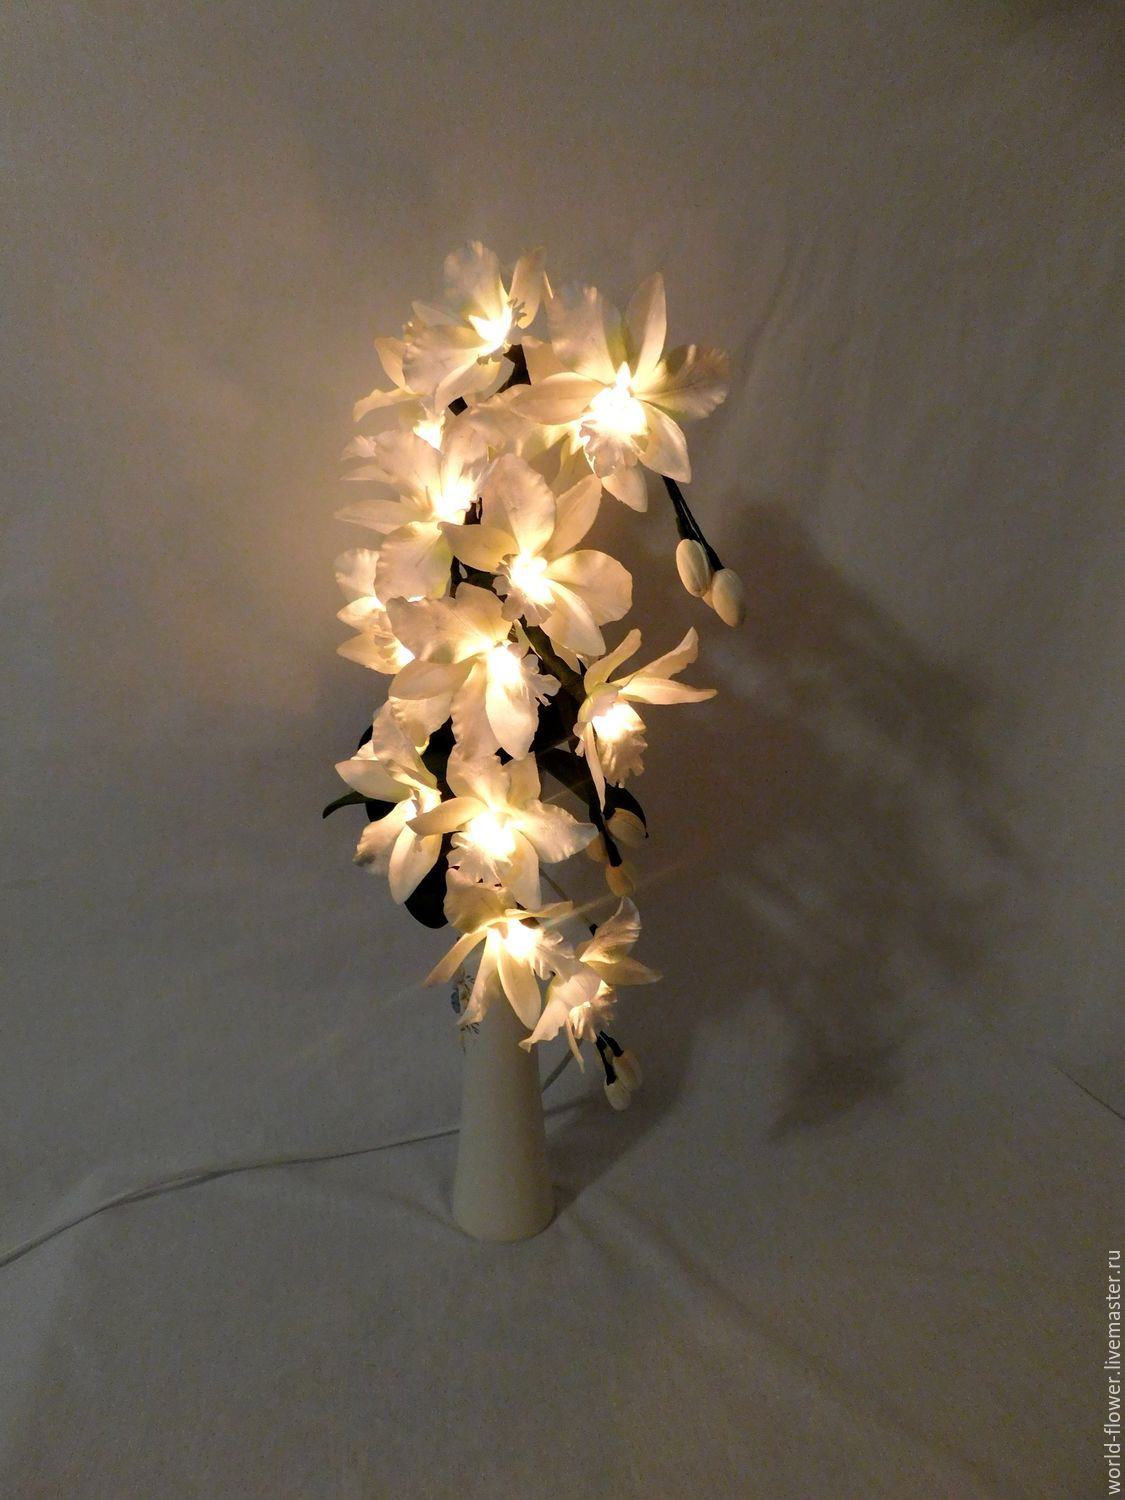 flower lights in vase of bouquet lamp white orchid 3 twigs vase swan shop online on regarding order bouquet lamp white orchid 3 twigs vase swan